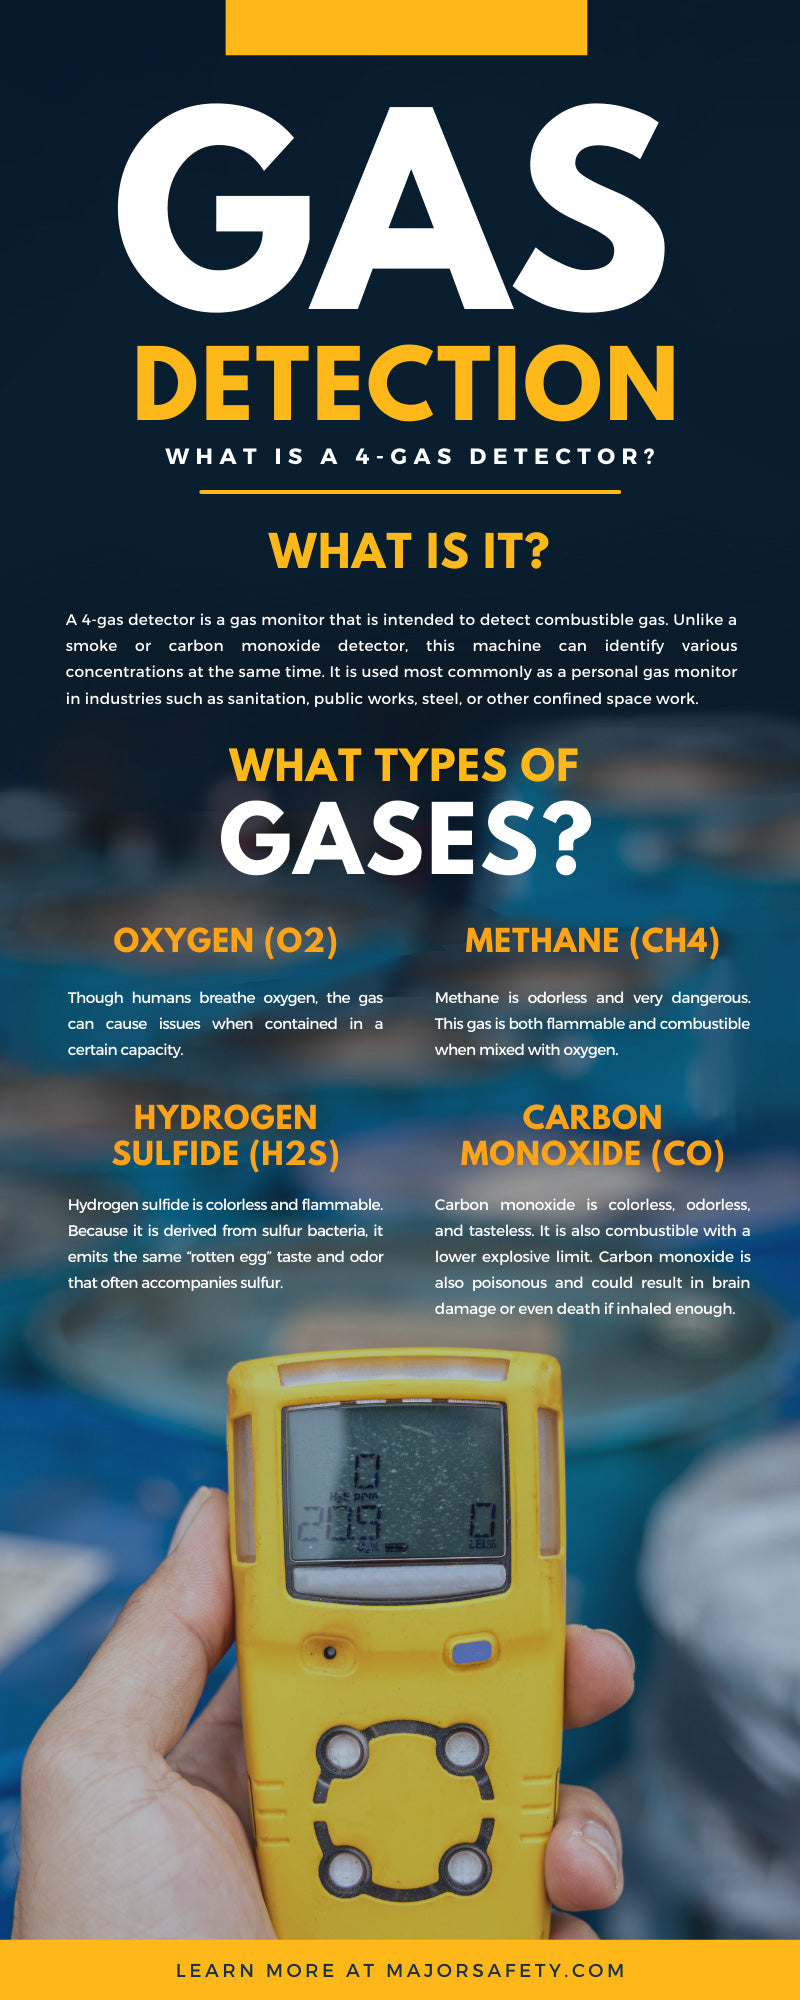 Gas Detection: What Is a 4-Gas Detector?